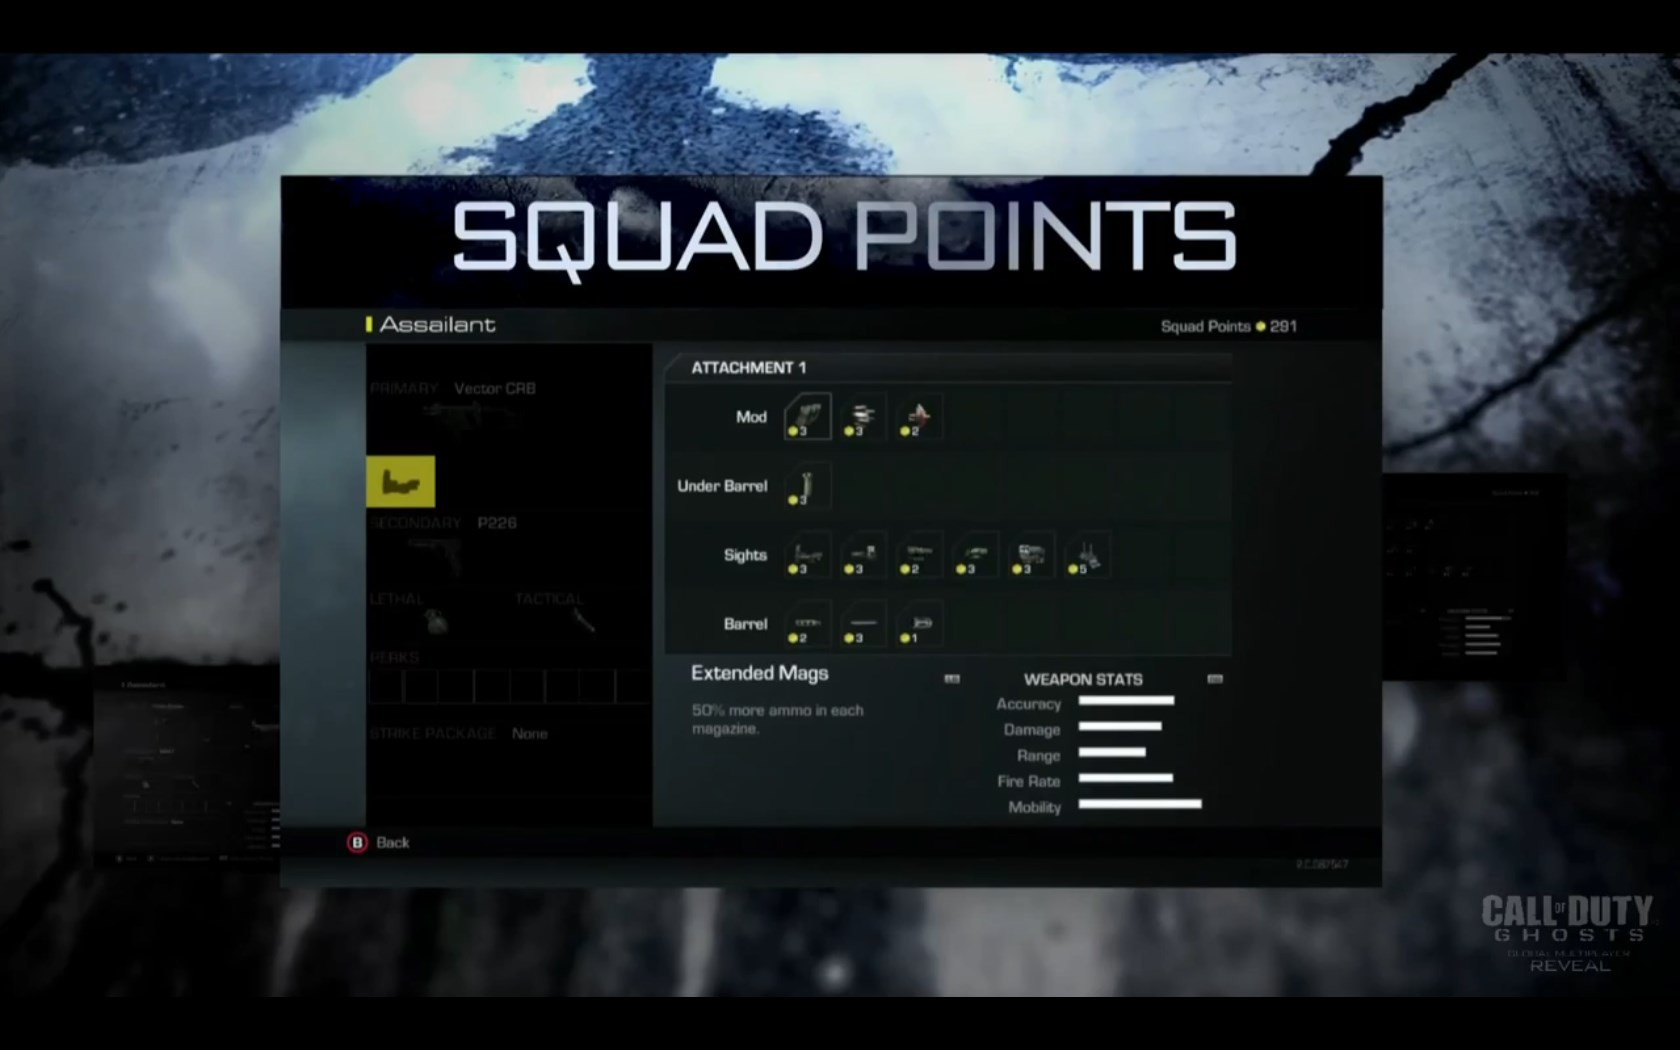 Ghosts - Squad Points